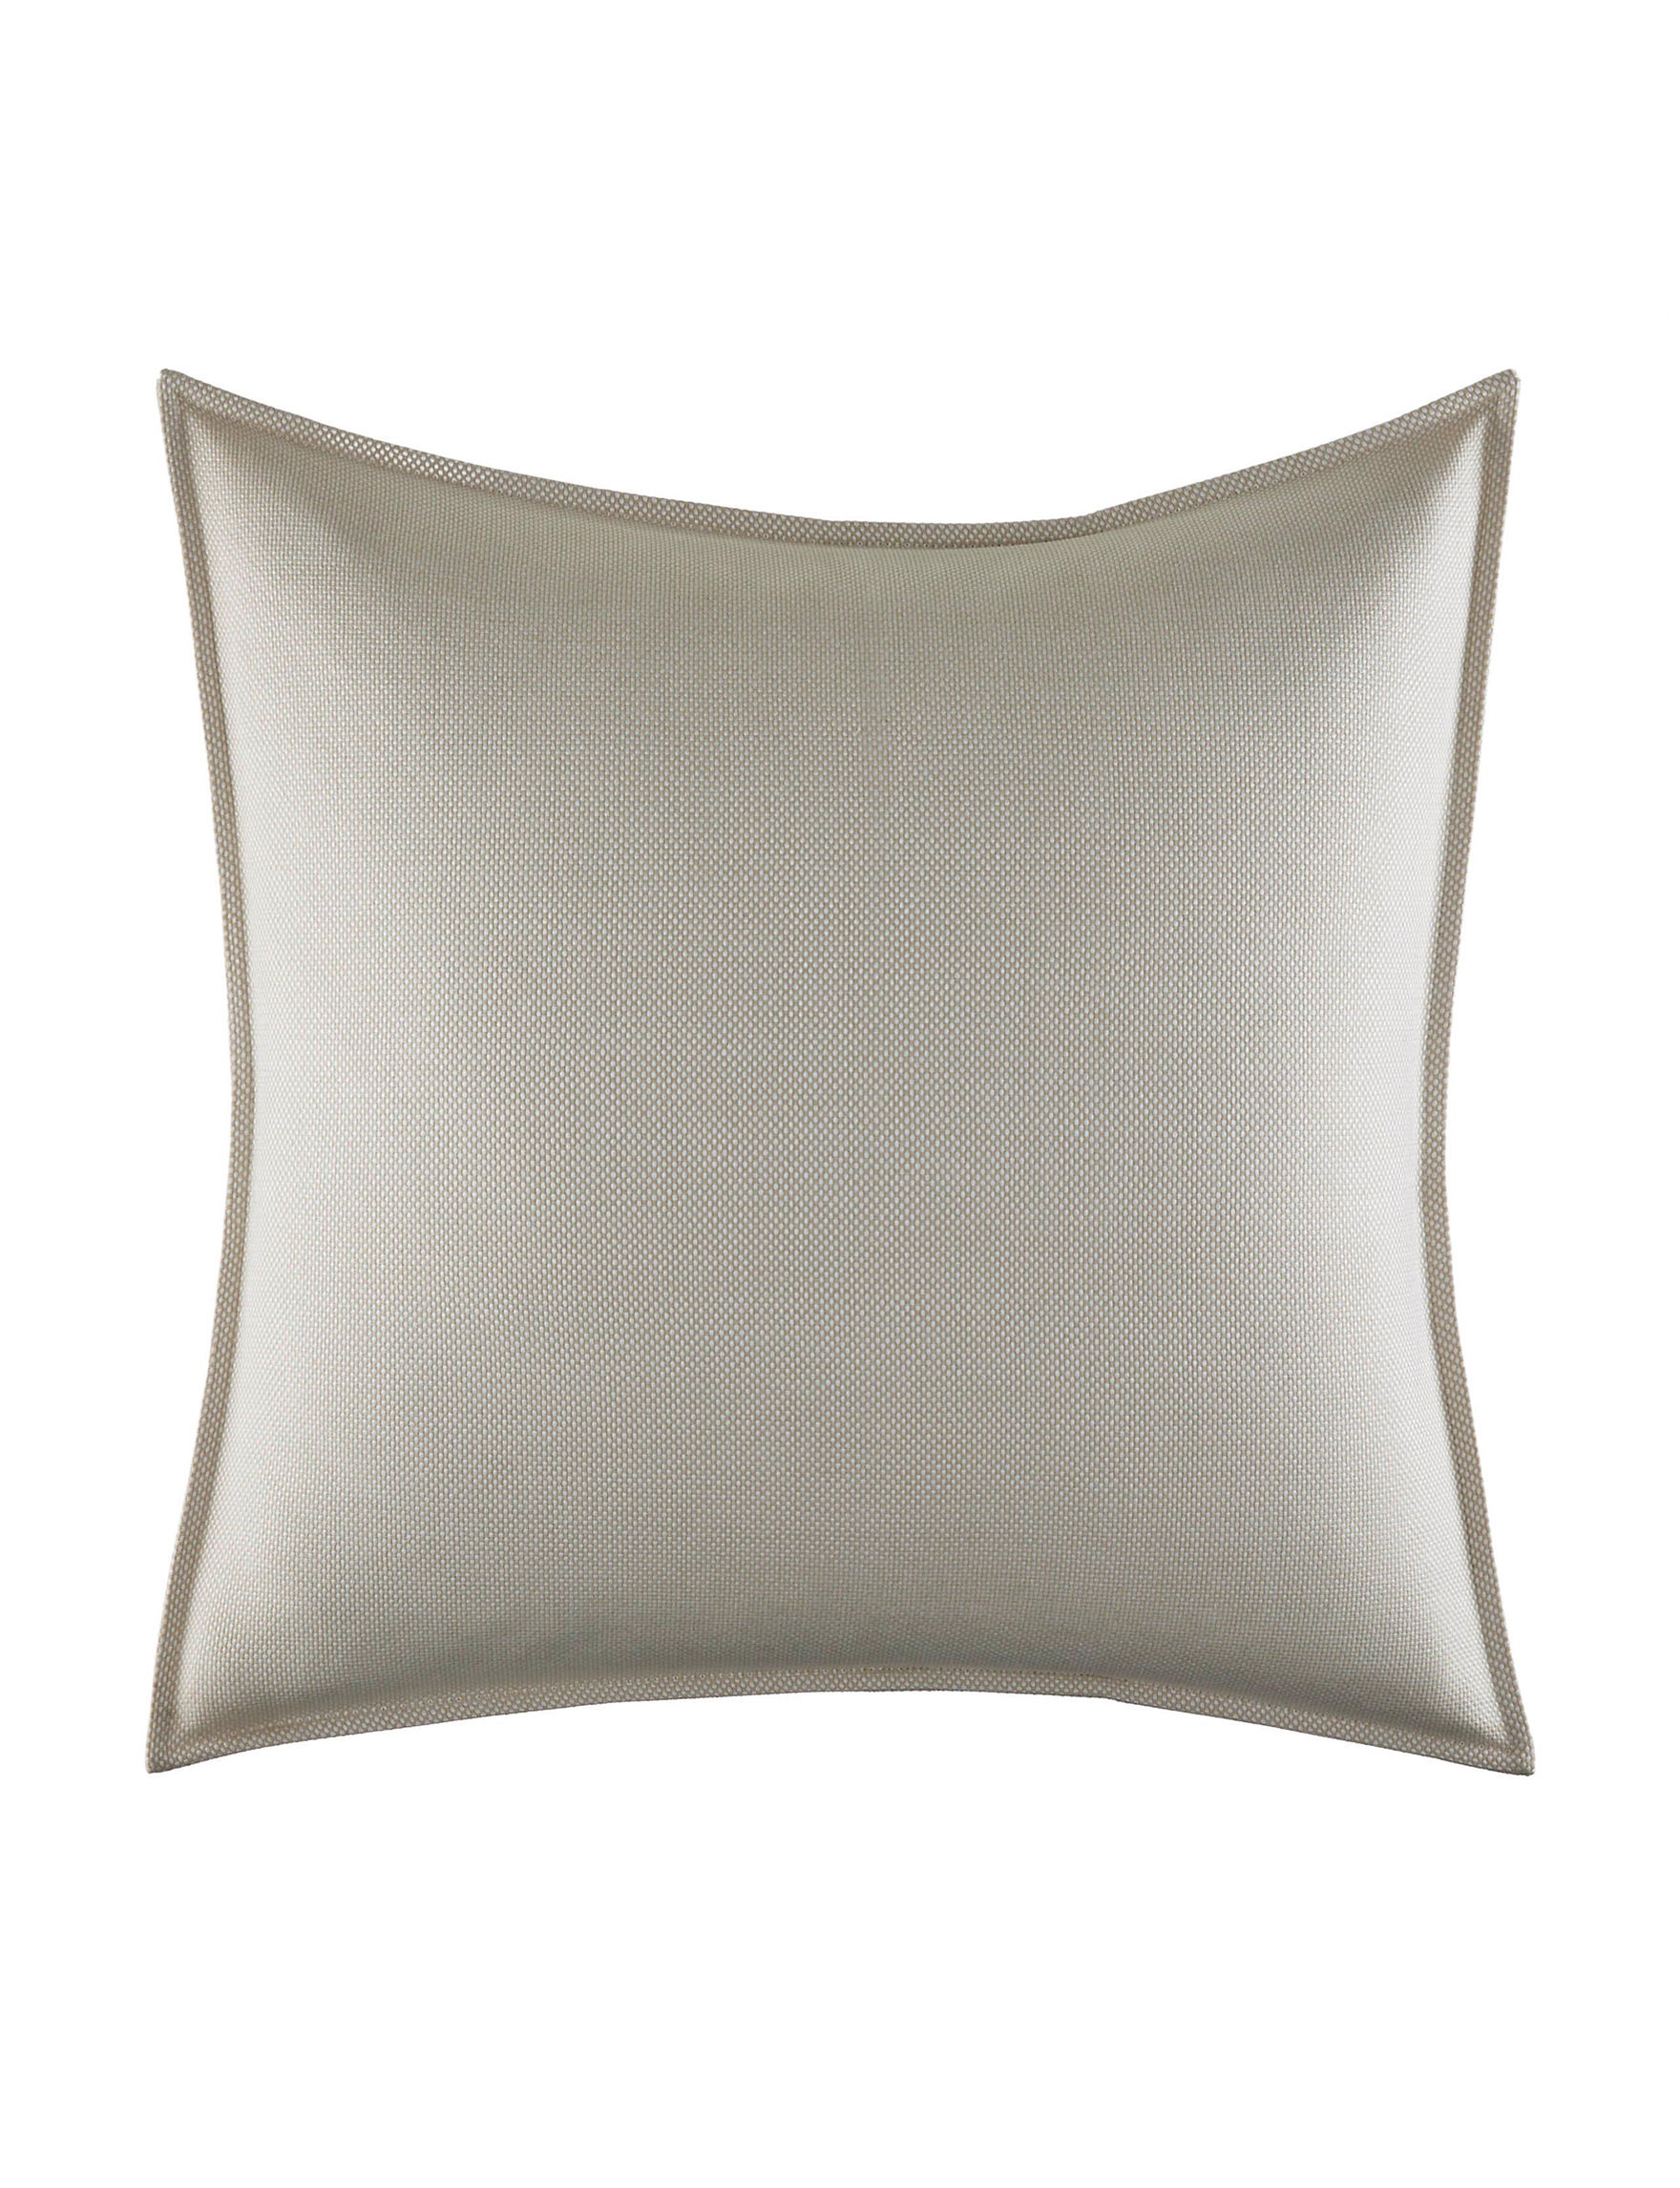 Tommy Bahama Beige Pillow Shams